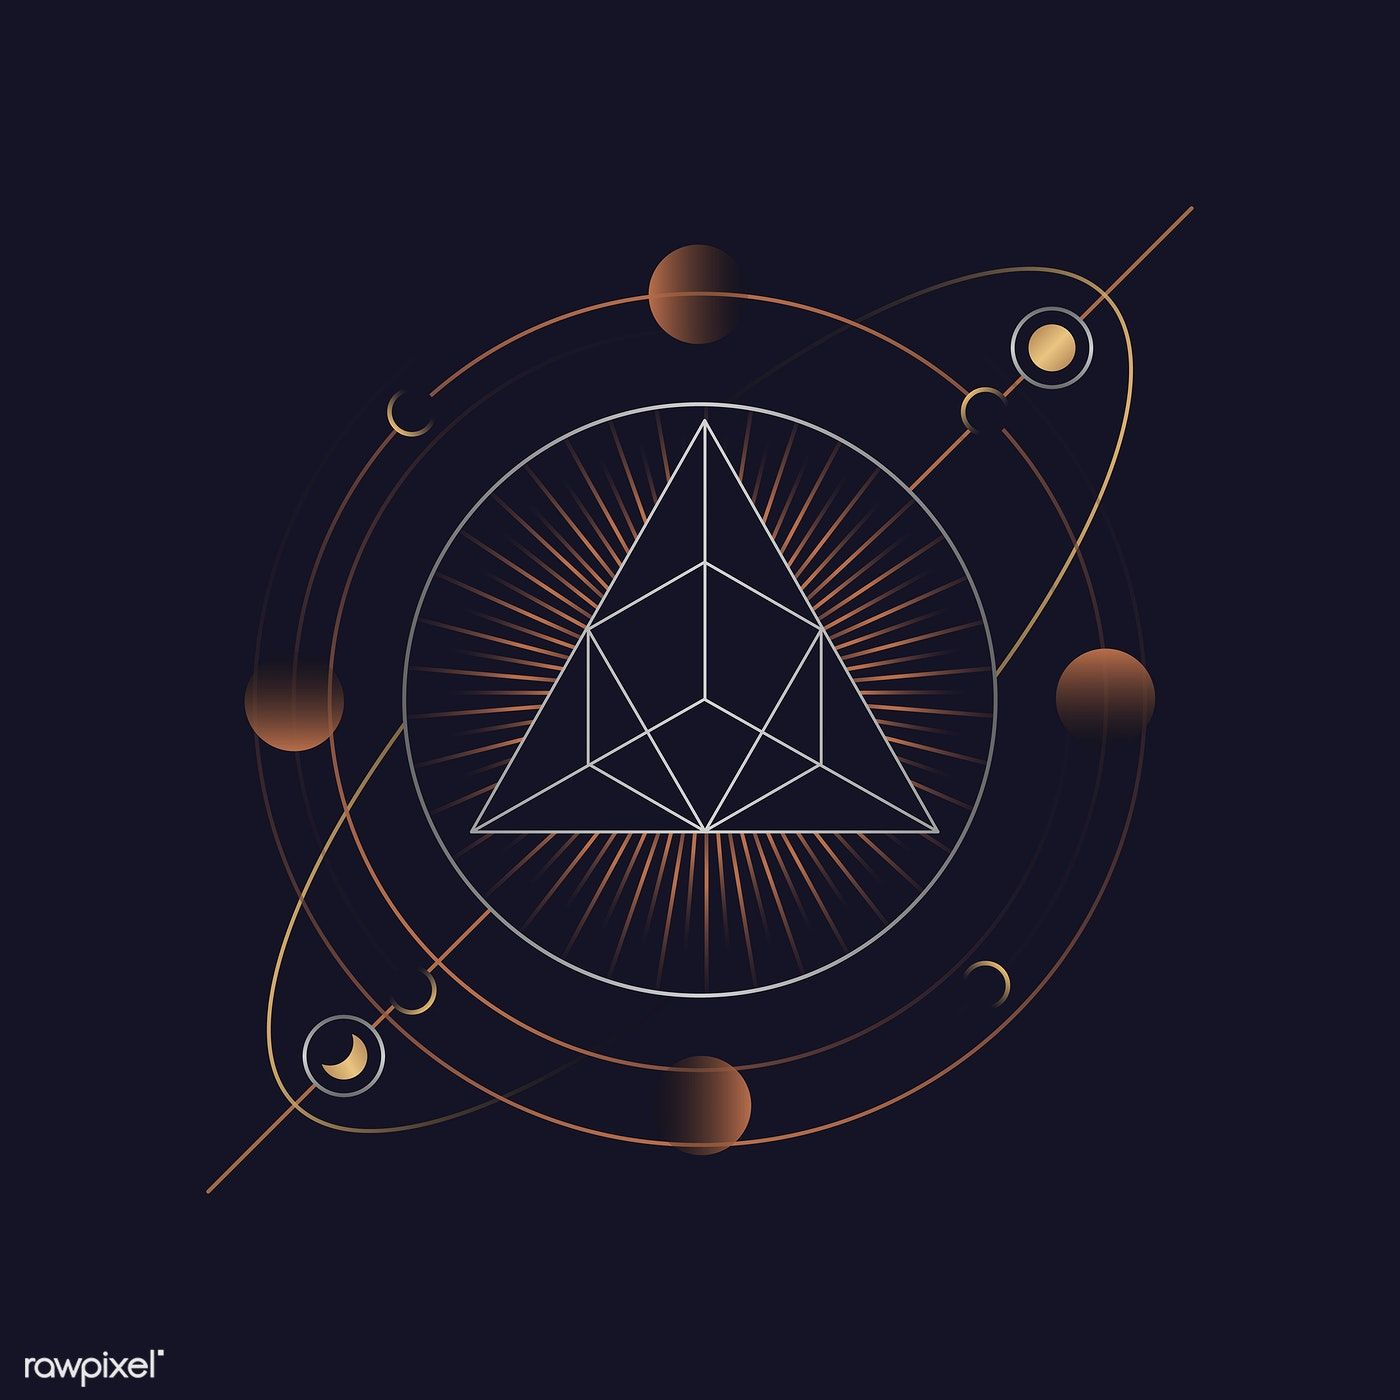 Download premium vector of Geometric triangle mystic